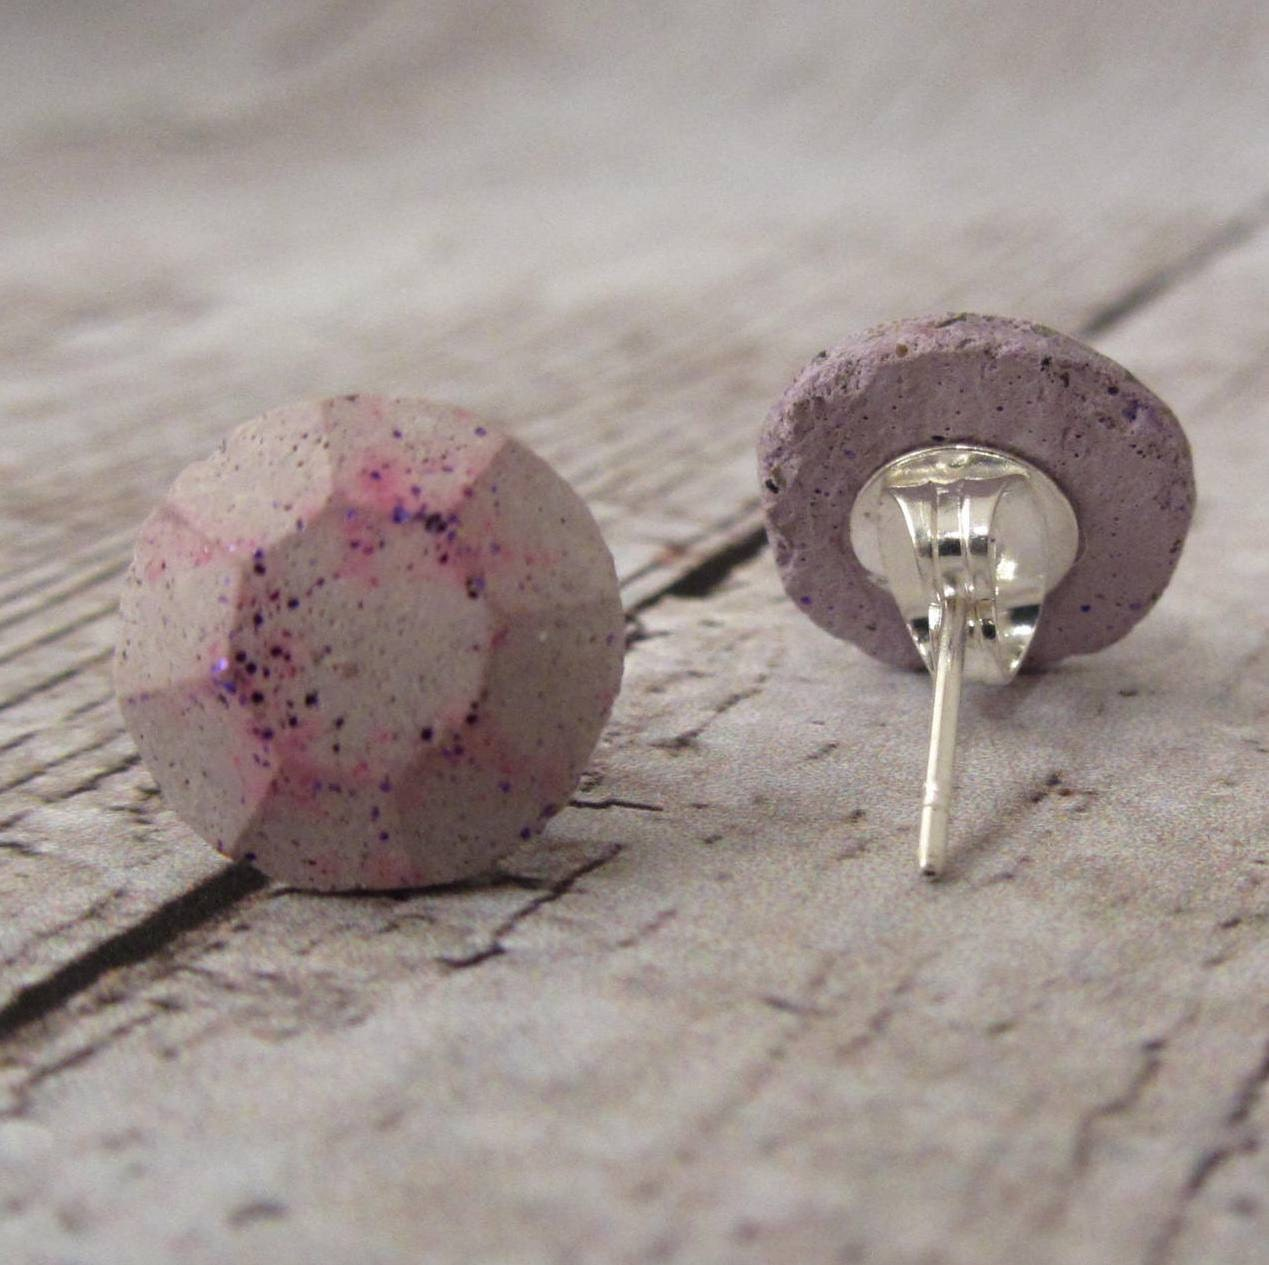 Concrete Pale Lavender post Earrings Hot Pink Oxidized Glitter Exposed Concrete Stud Earring Faceted Gem/Jewel Aromatherapy - Terraromarific